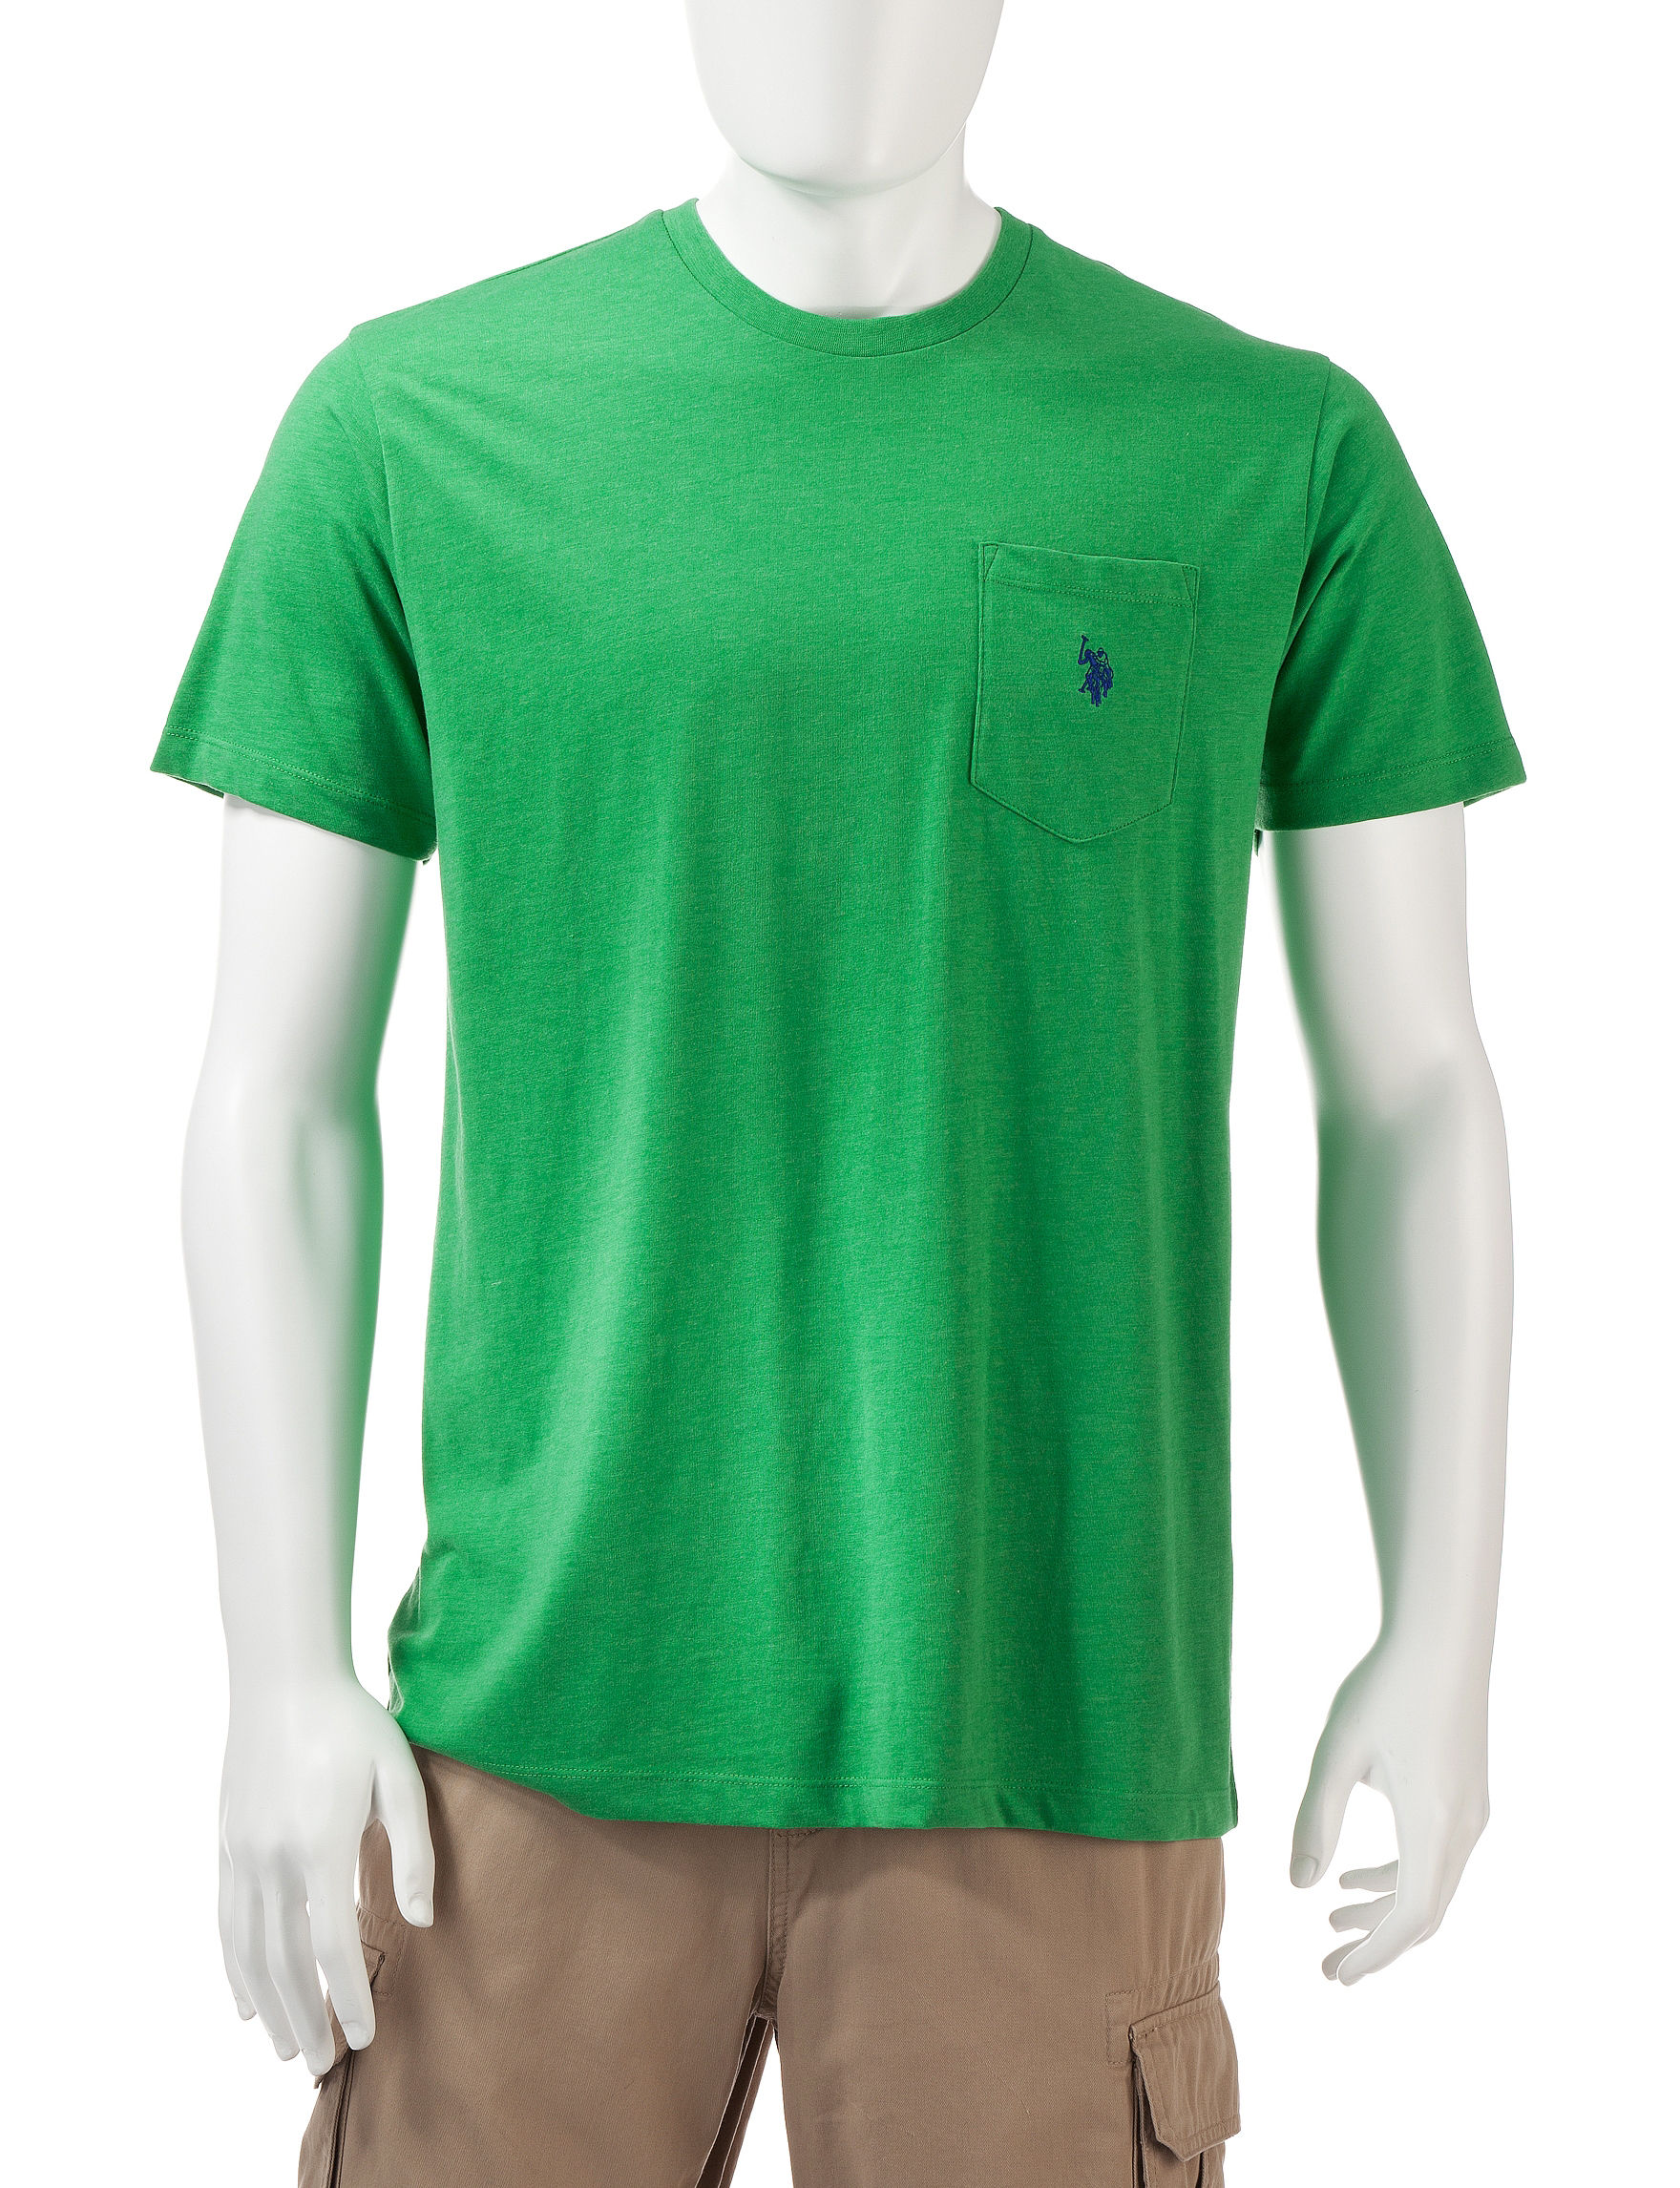 U.S. Polo Assn. Light Green Tees & Tanks